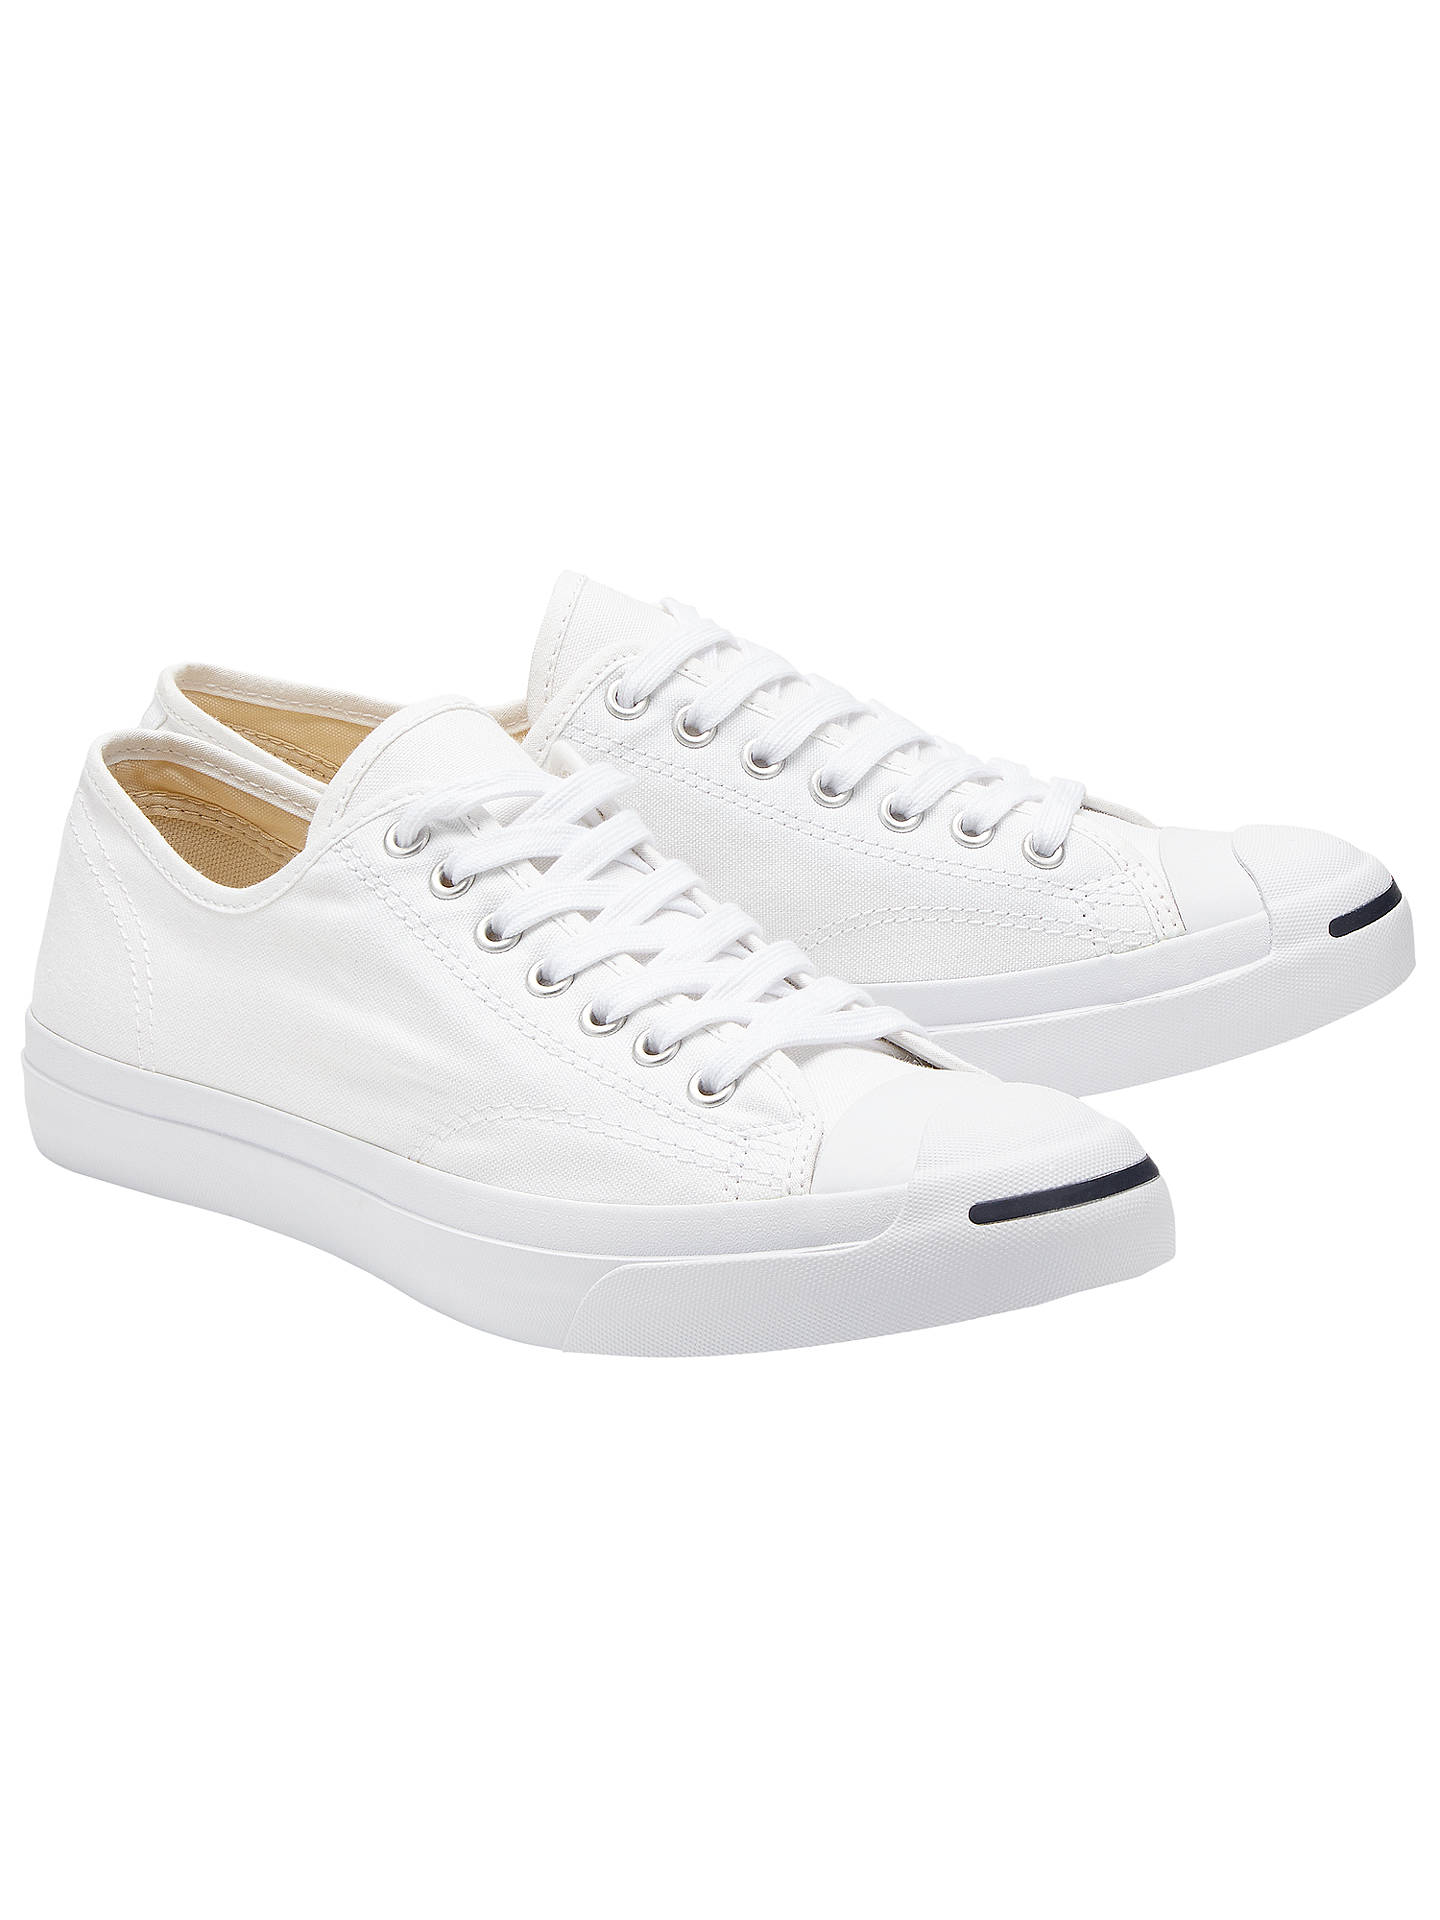 ab756ccb34d6 Converse Jack Purcell Lace-Up Canvas Trainers at John Lewis   Partners